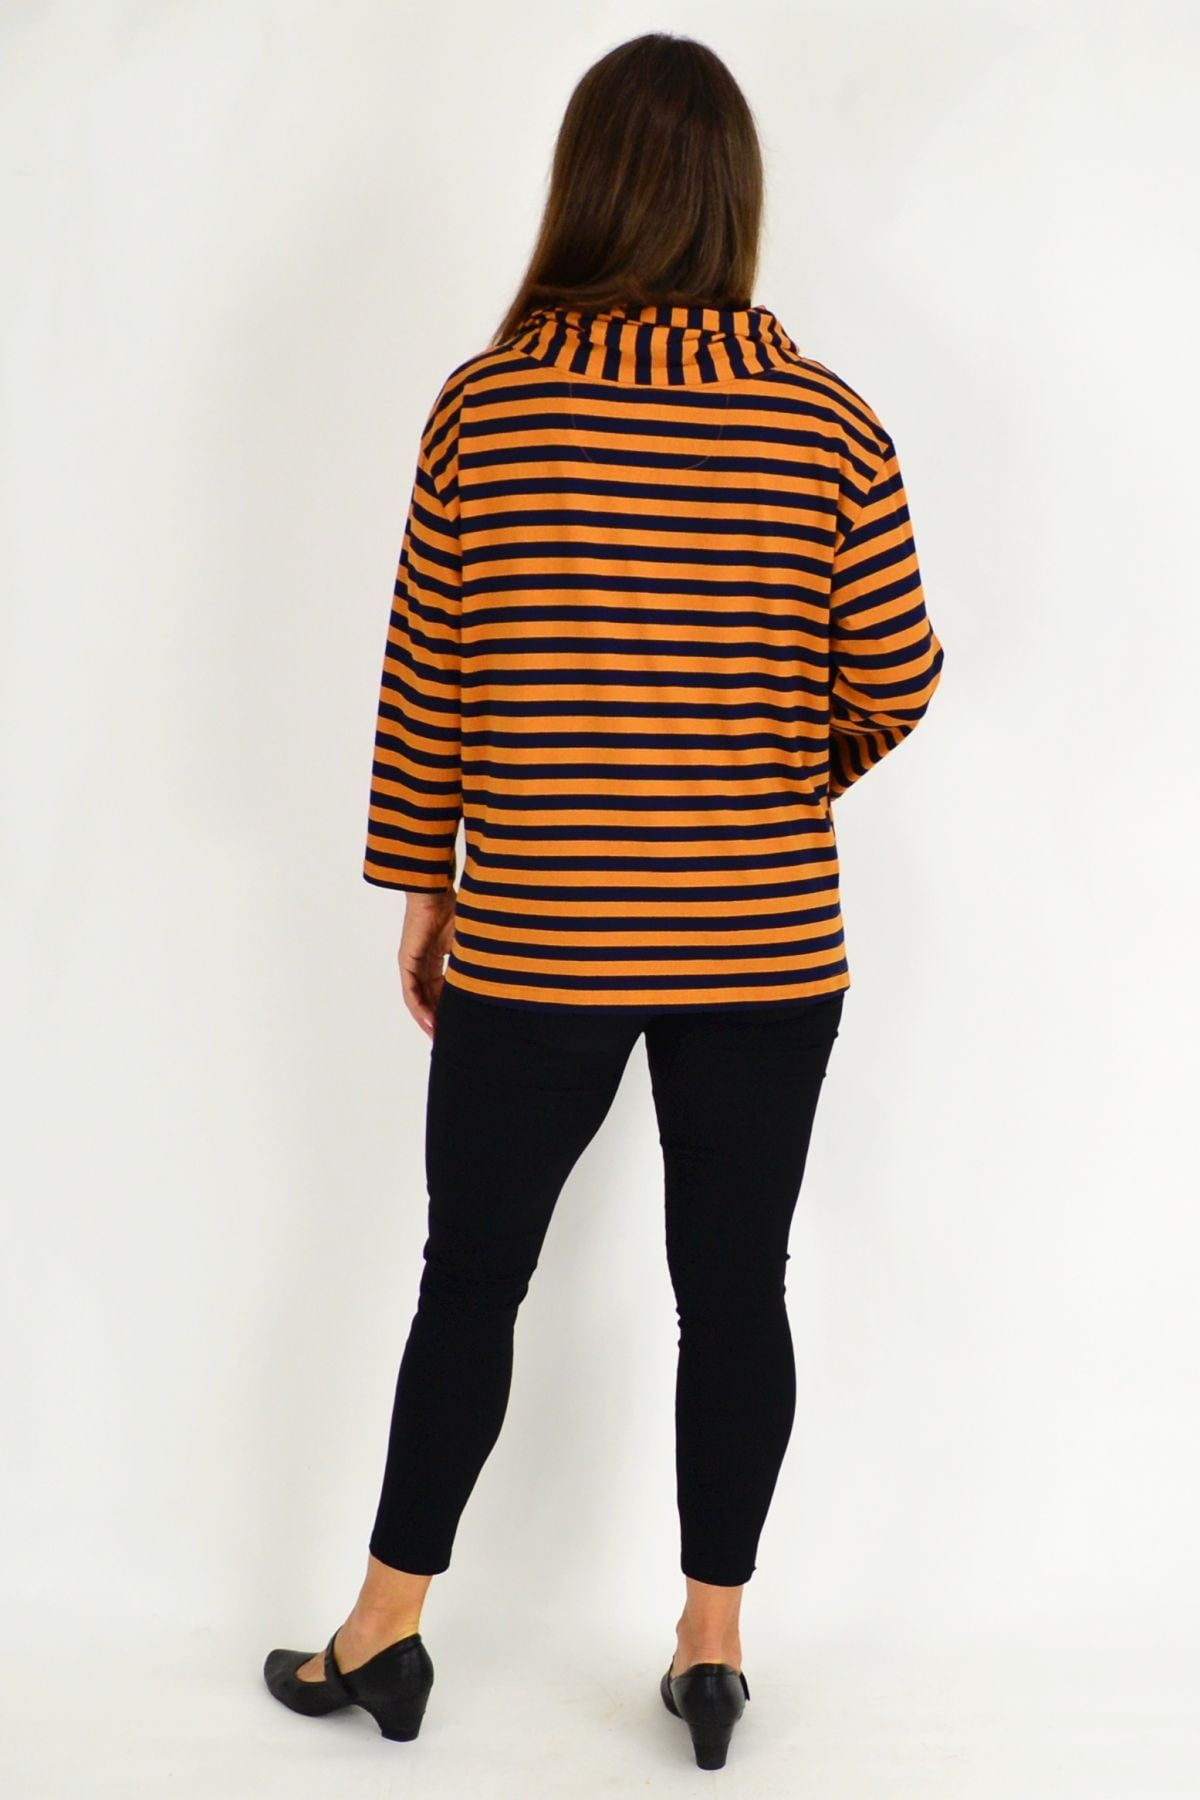 Mustard Nora Stripe Turtle Neck Tunic Jumper | I Love Tunics | Tunic Tops | Tunic | Tunic Dresses  | womens clothing online